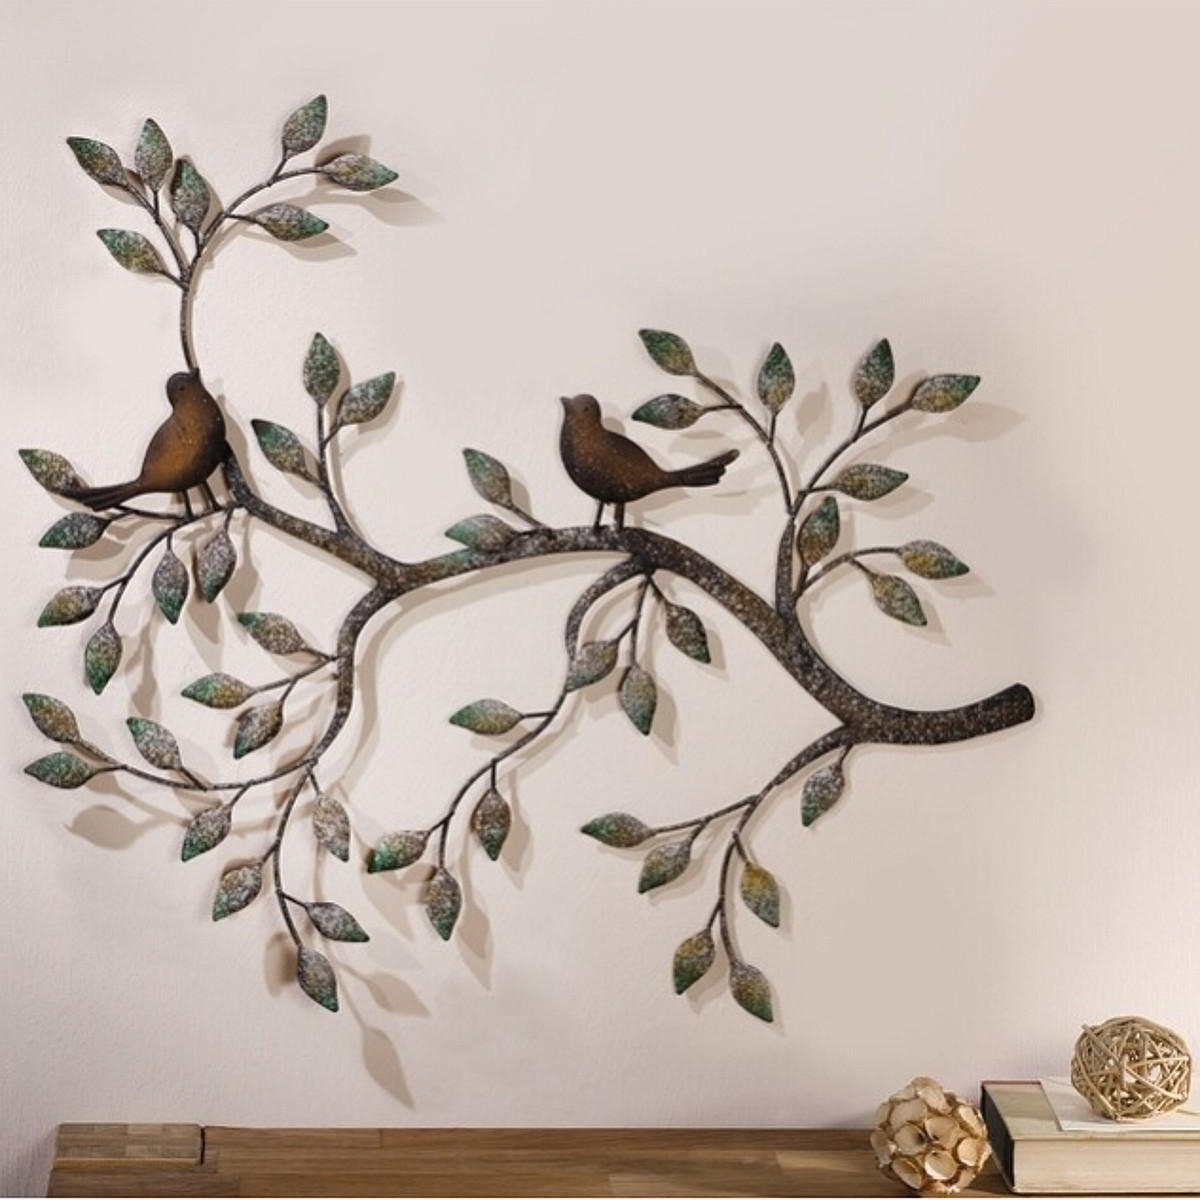 Tree Of Life Leaves Bird Wall Hanging Ornament Metal Wall Art Sculpture Home Room Decorations Pertaining To Tree Of Life Wall Decor (View 21 of 30)